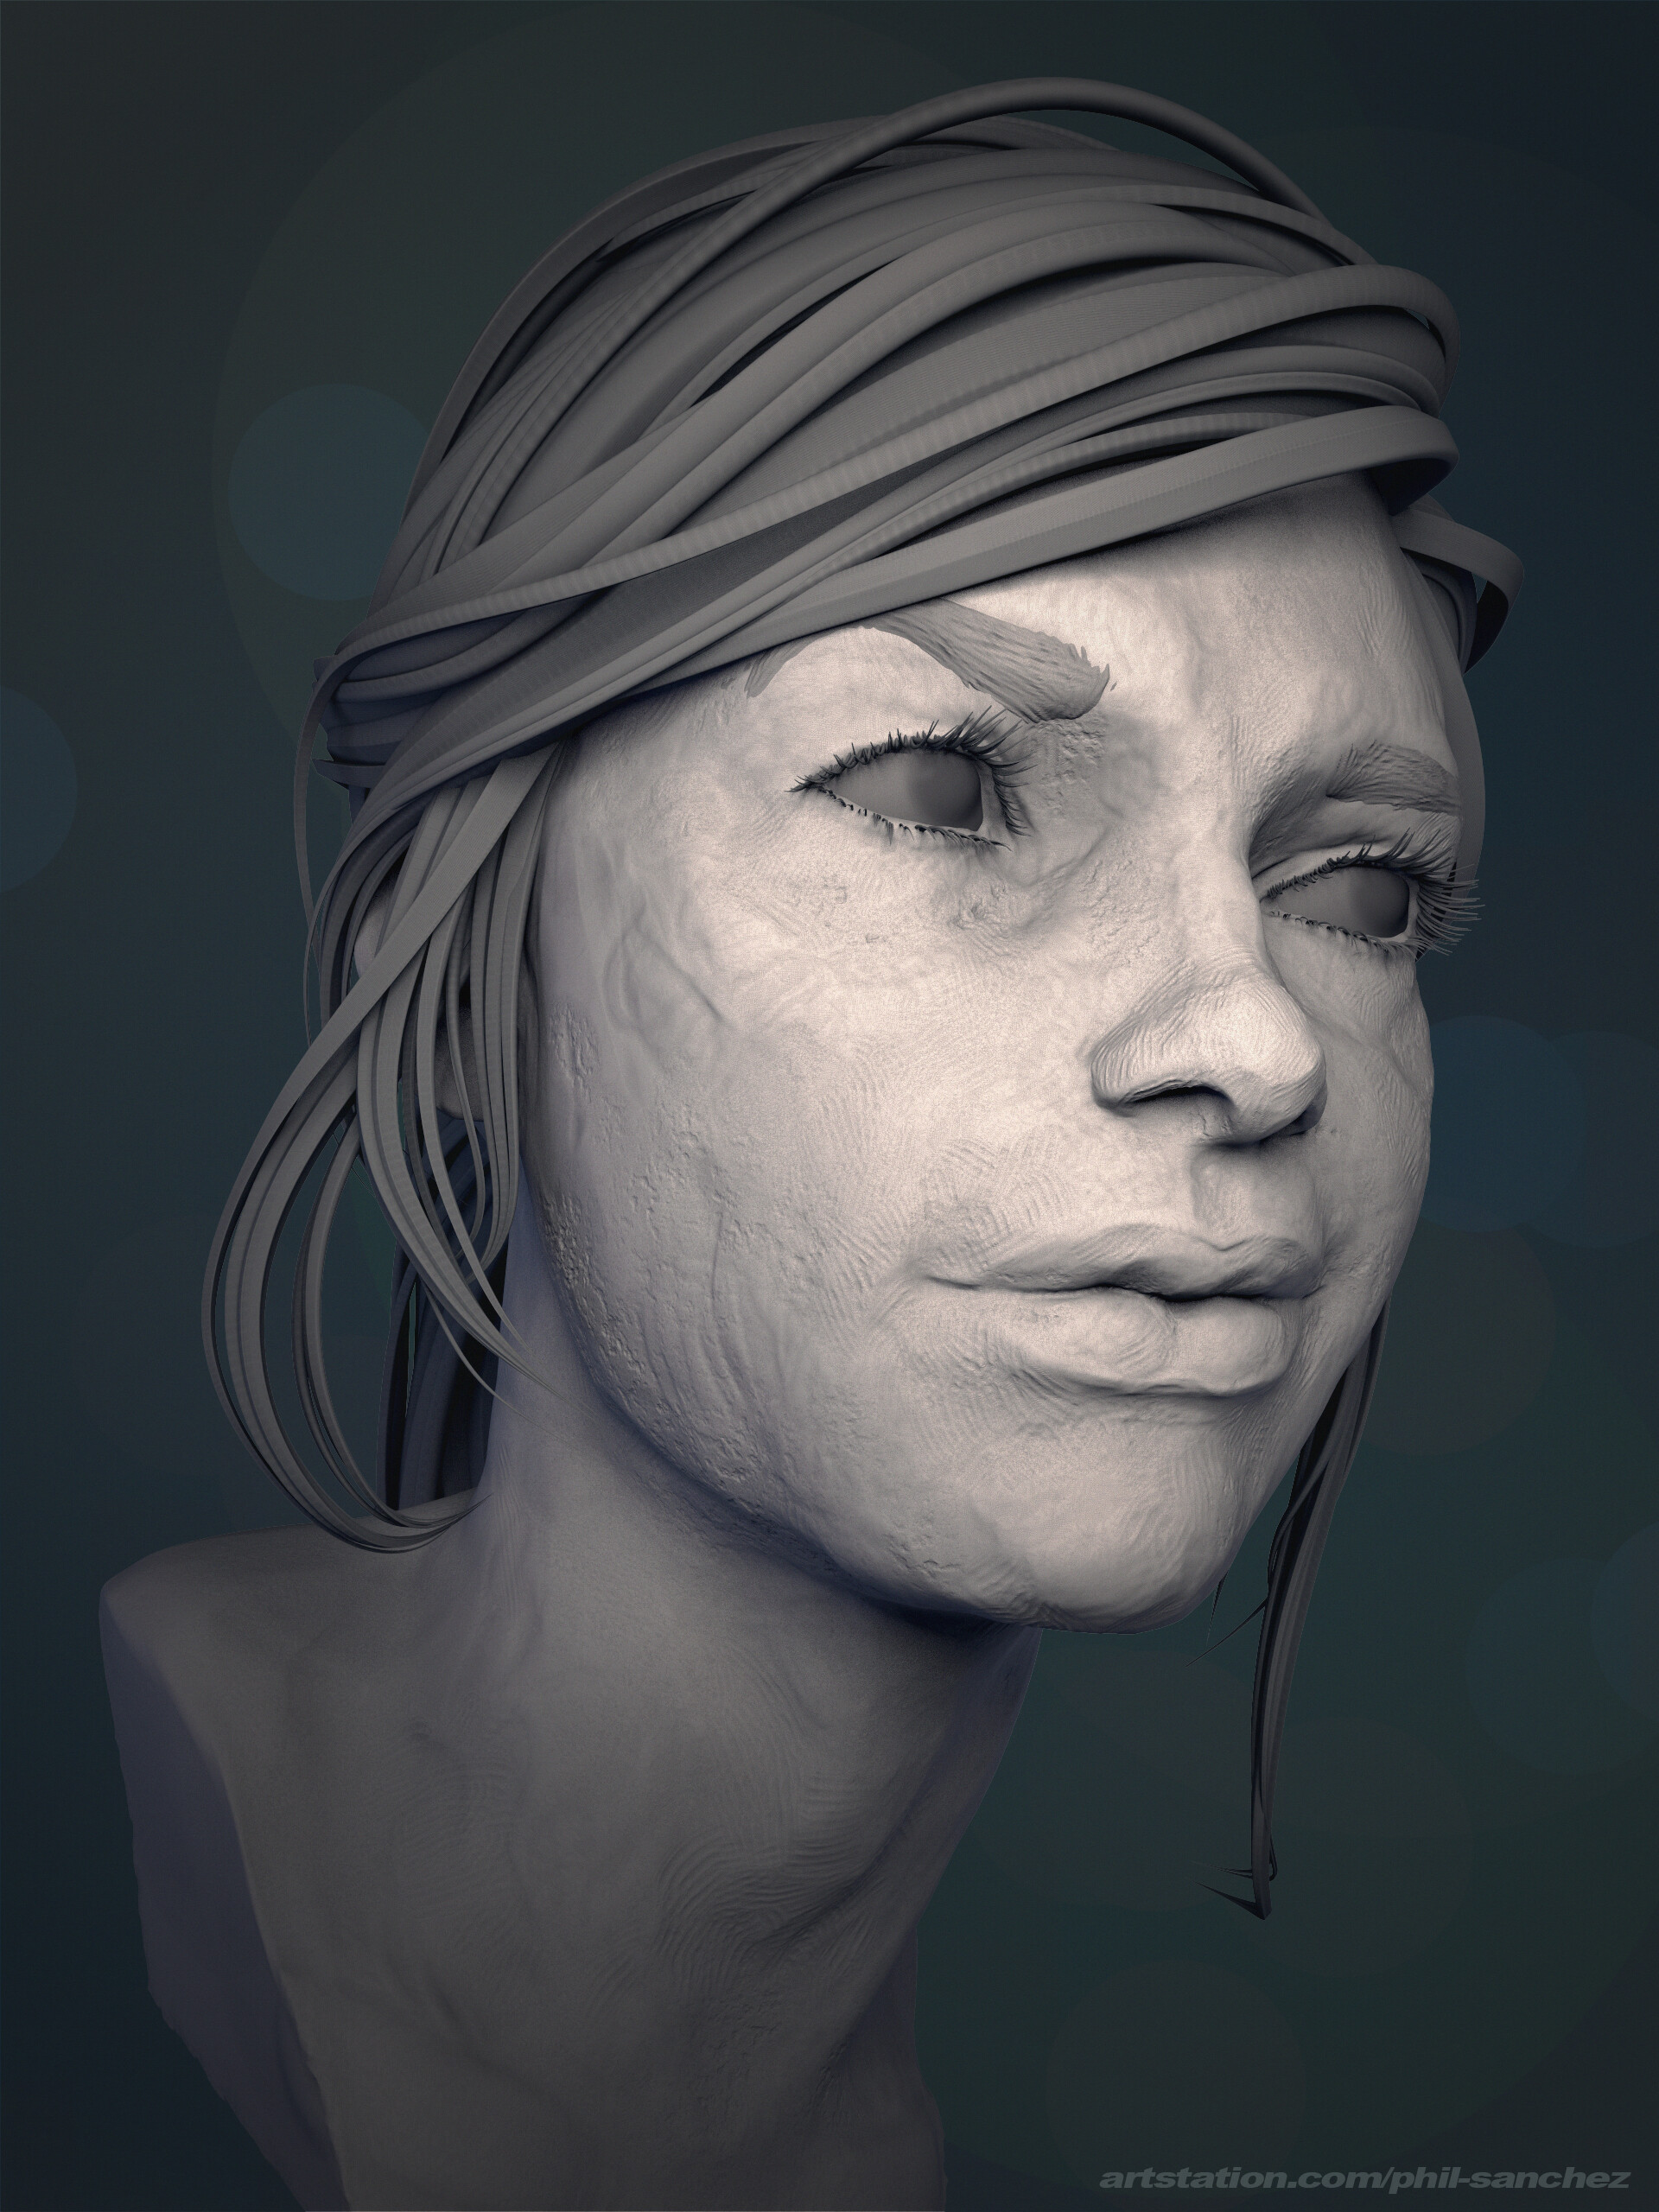 Philip sanchez girlheadrender03